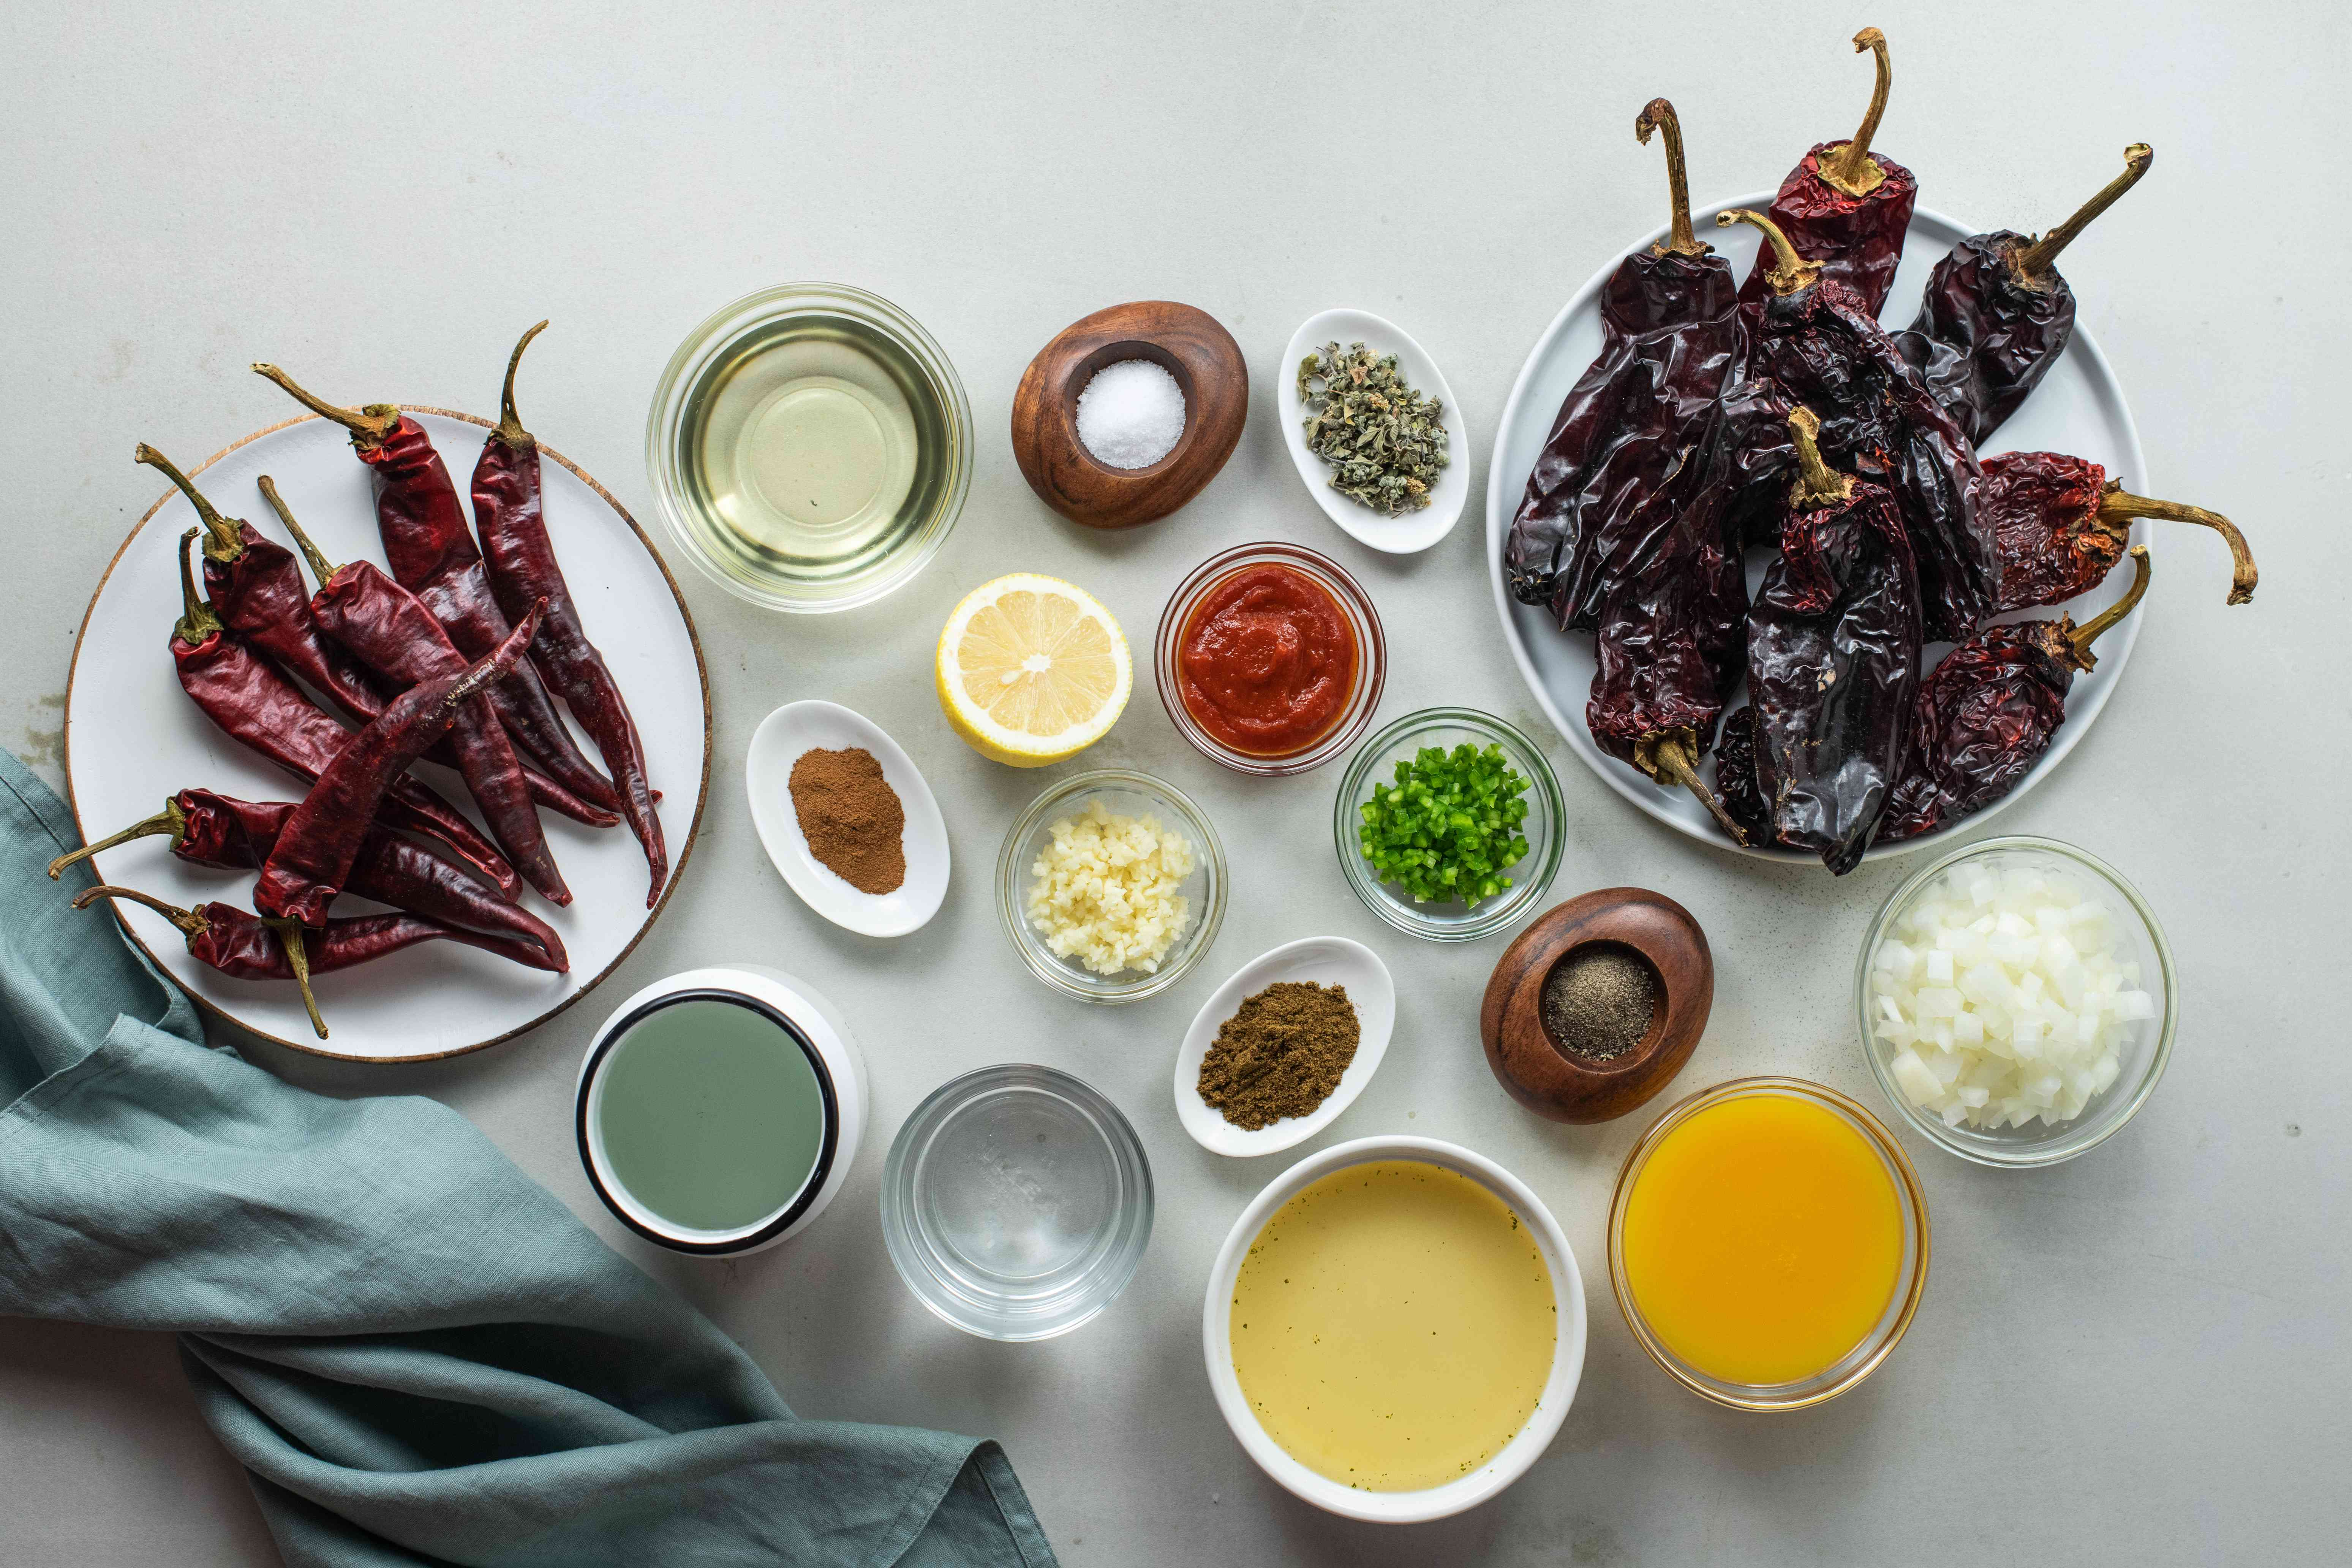 Ingredients for adobo sauce